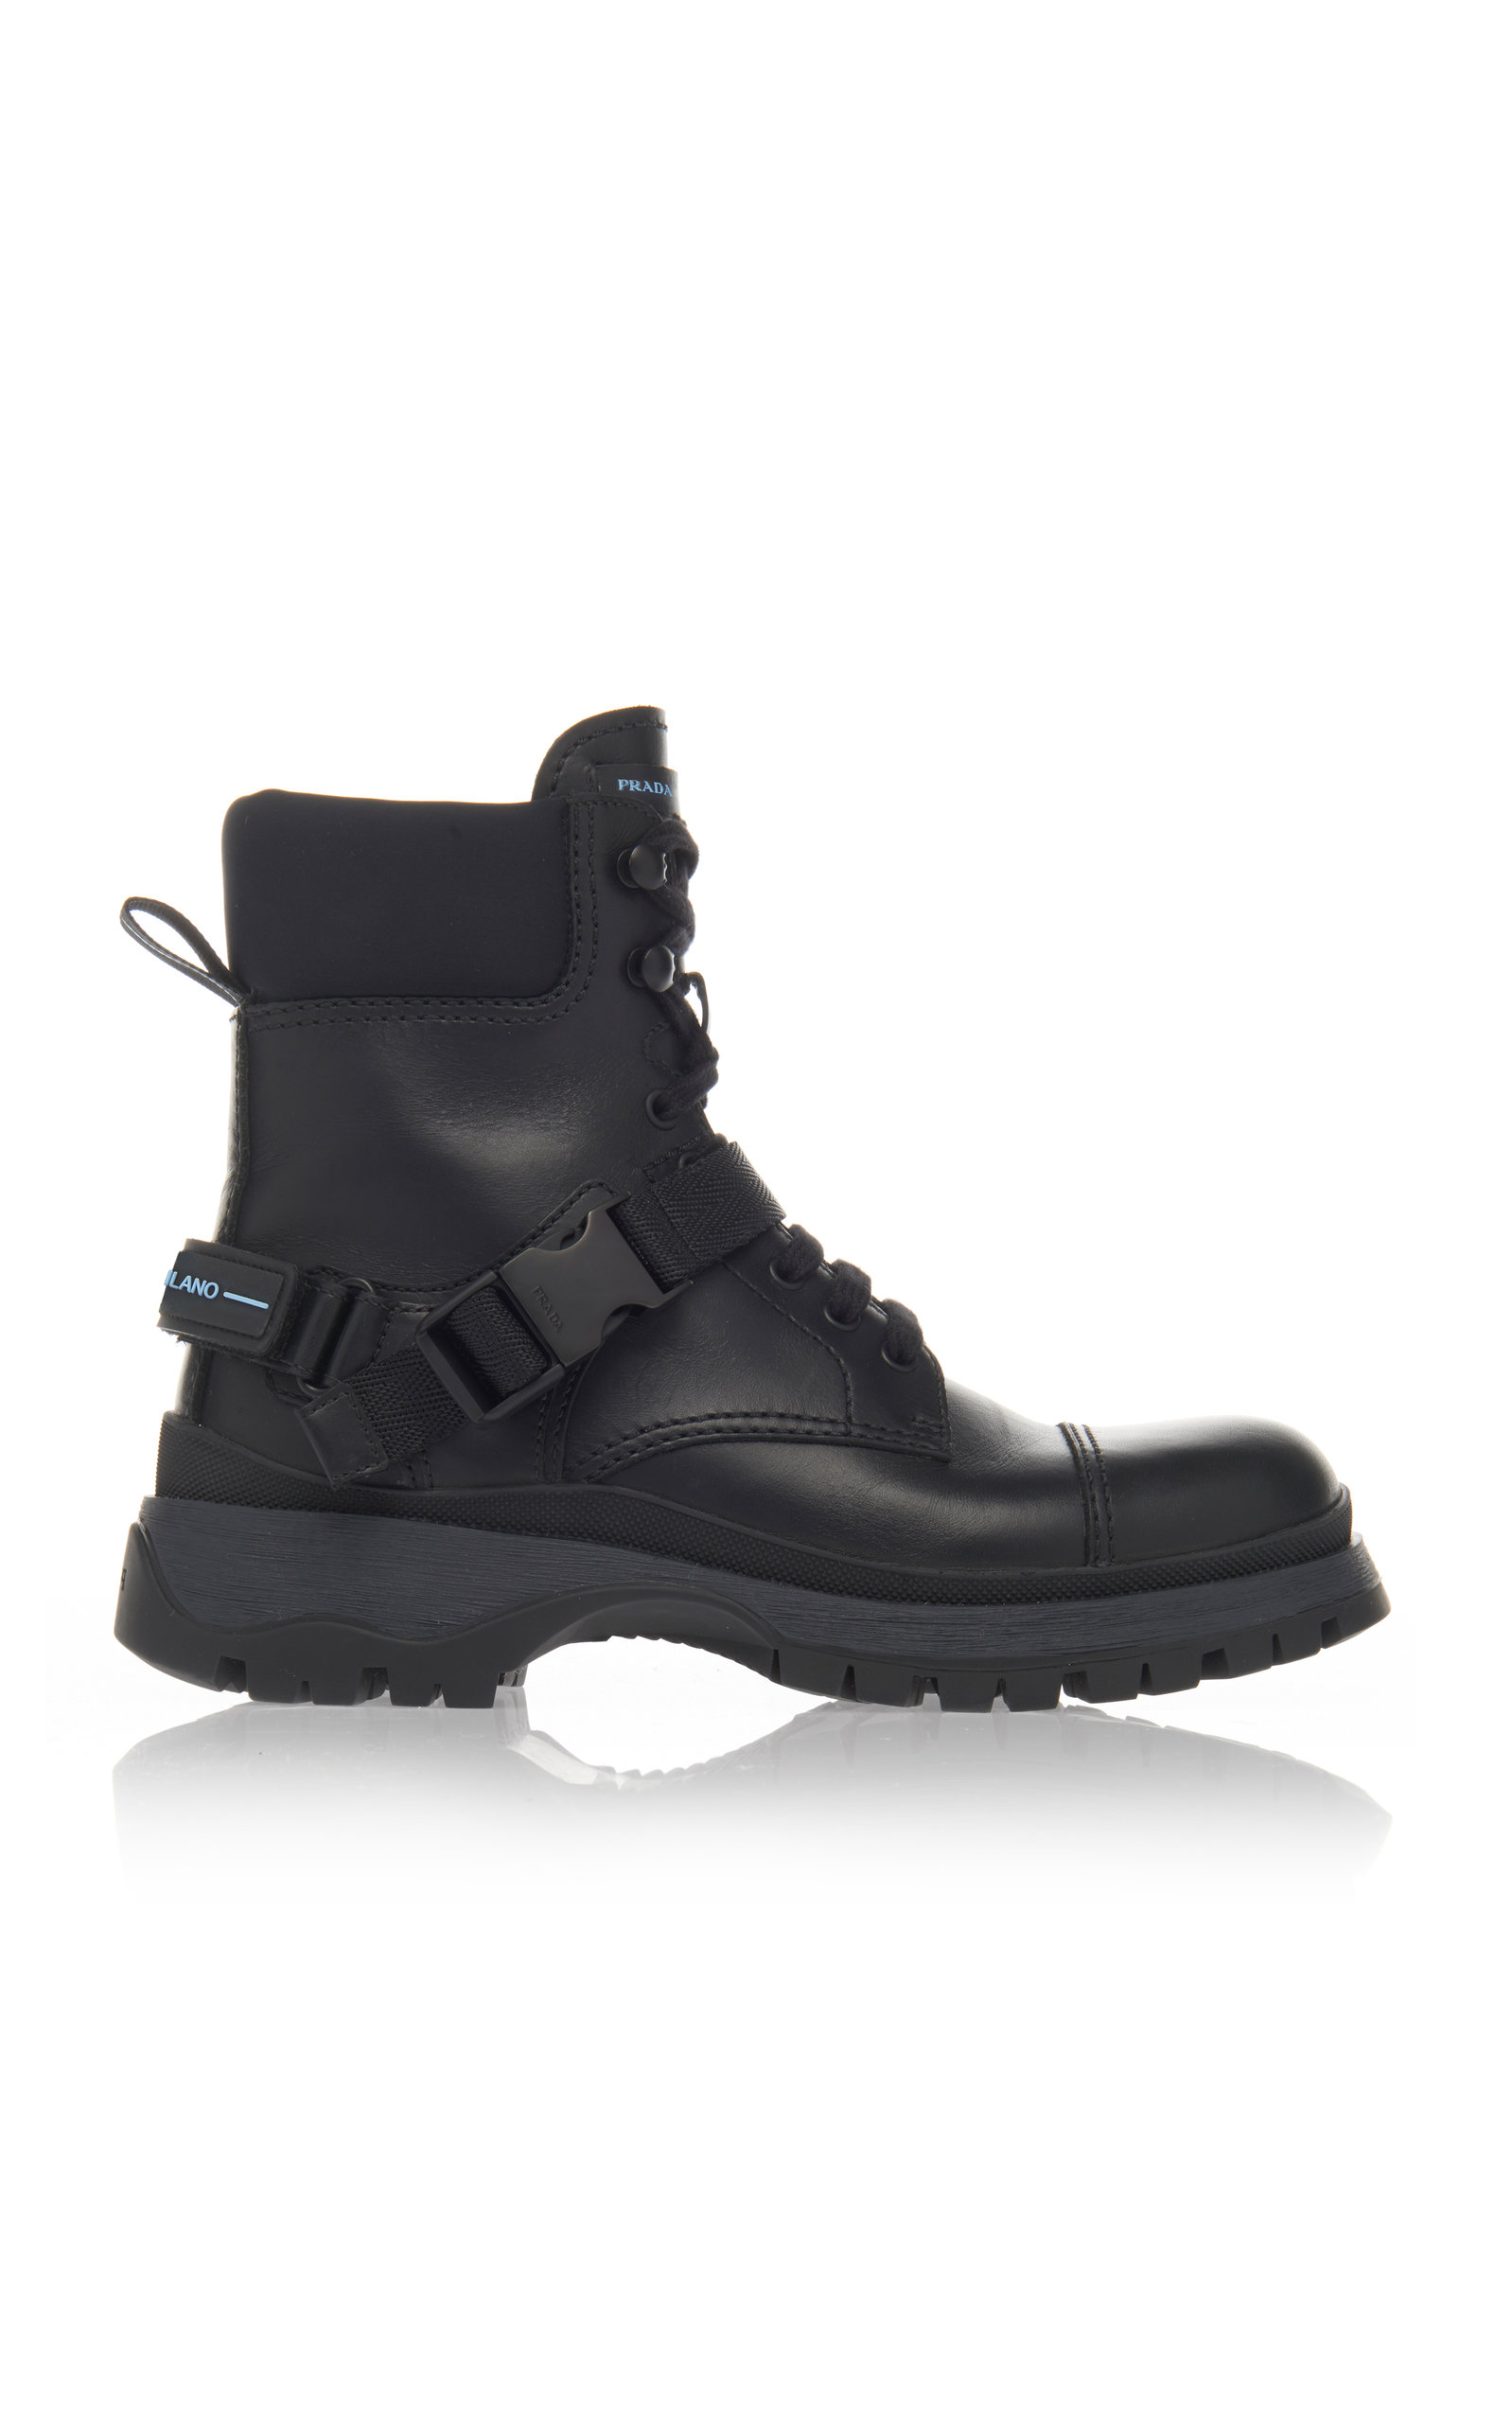 30MM LEATHER & NEOPRENE COMBAT BOOTS